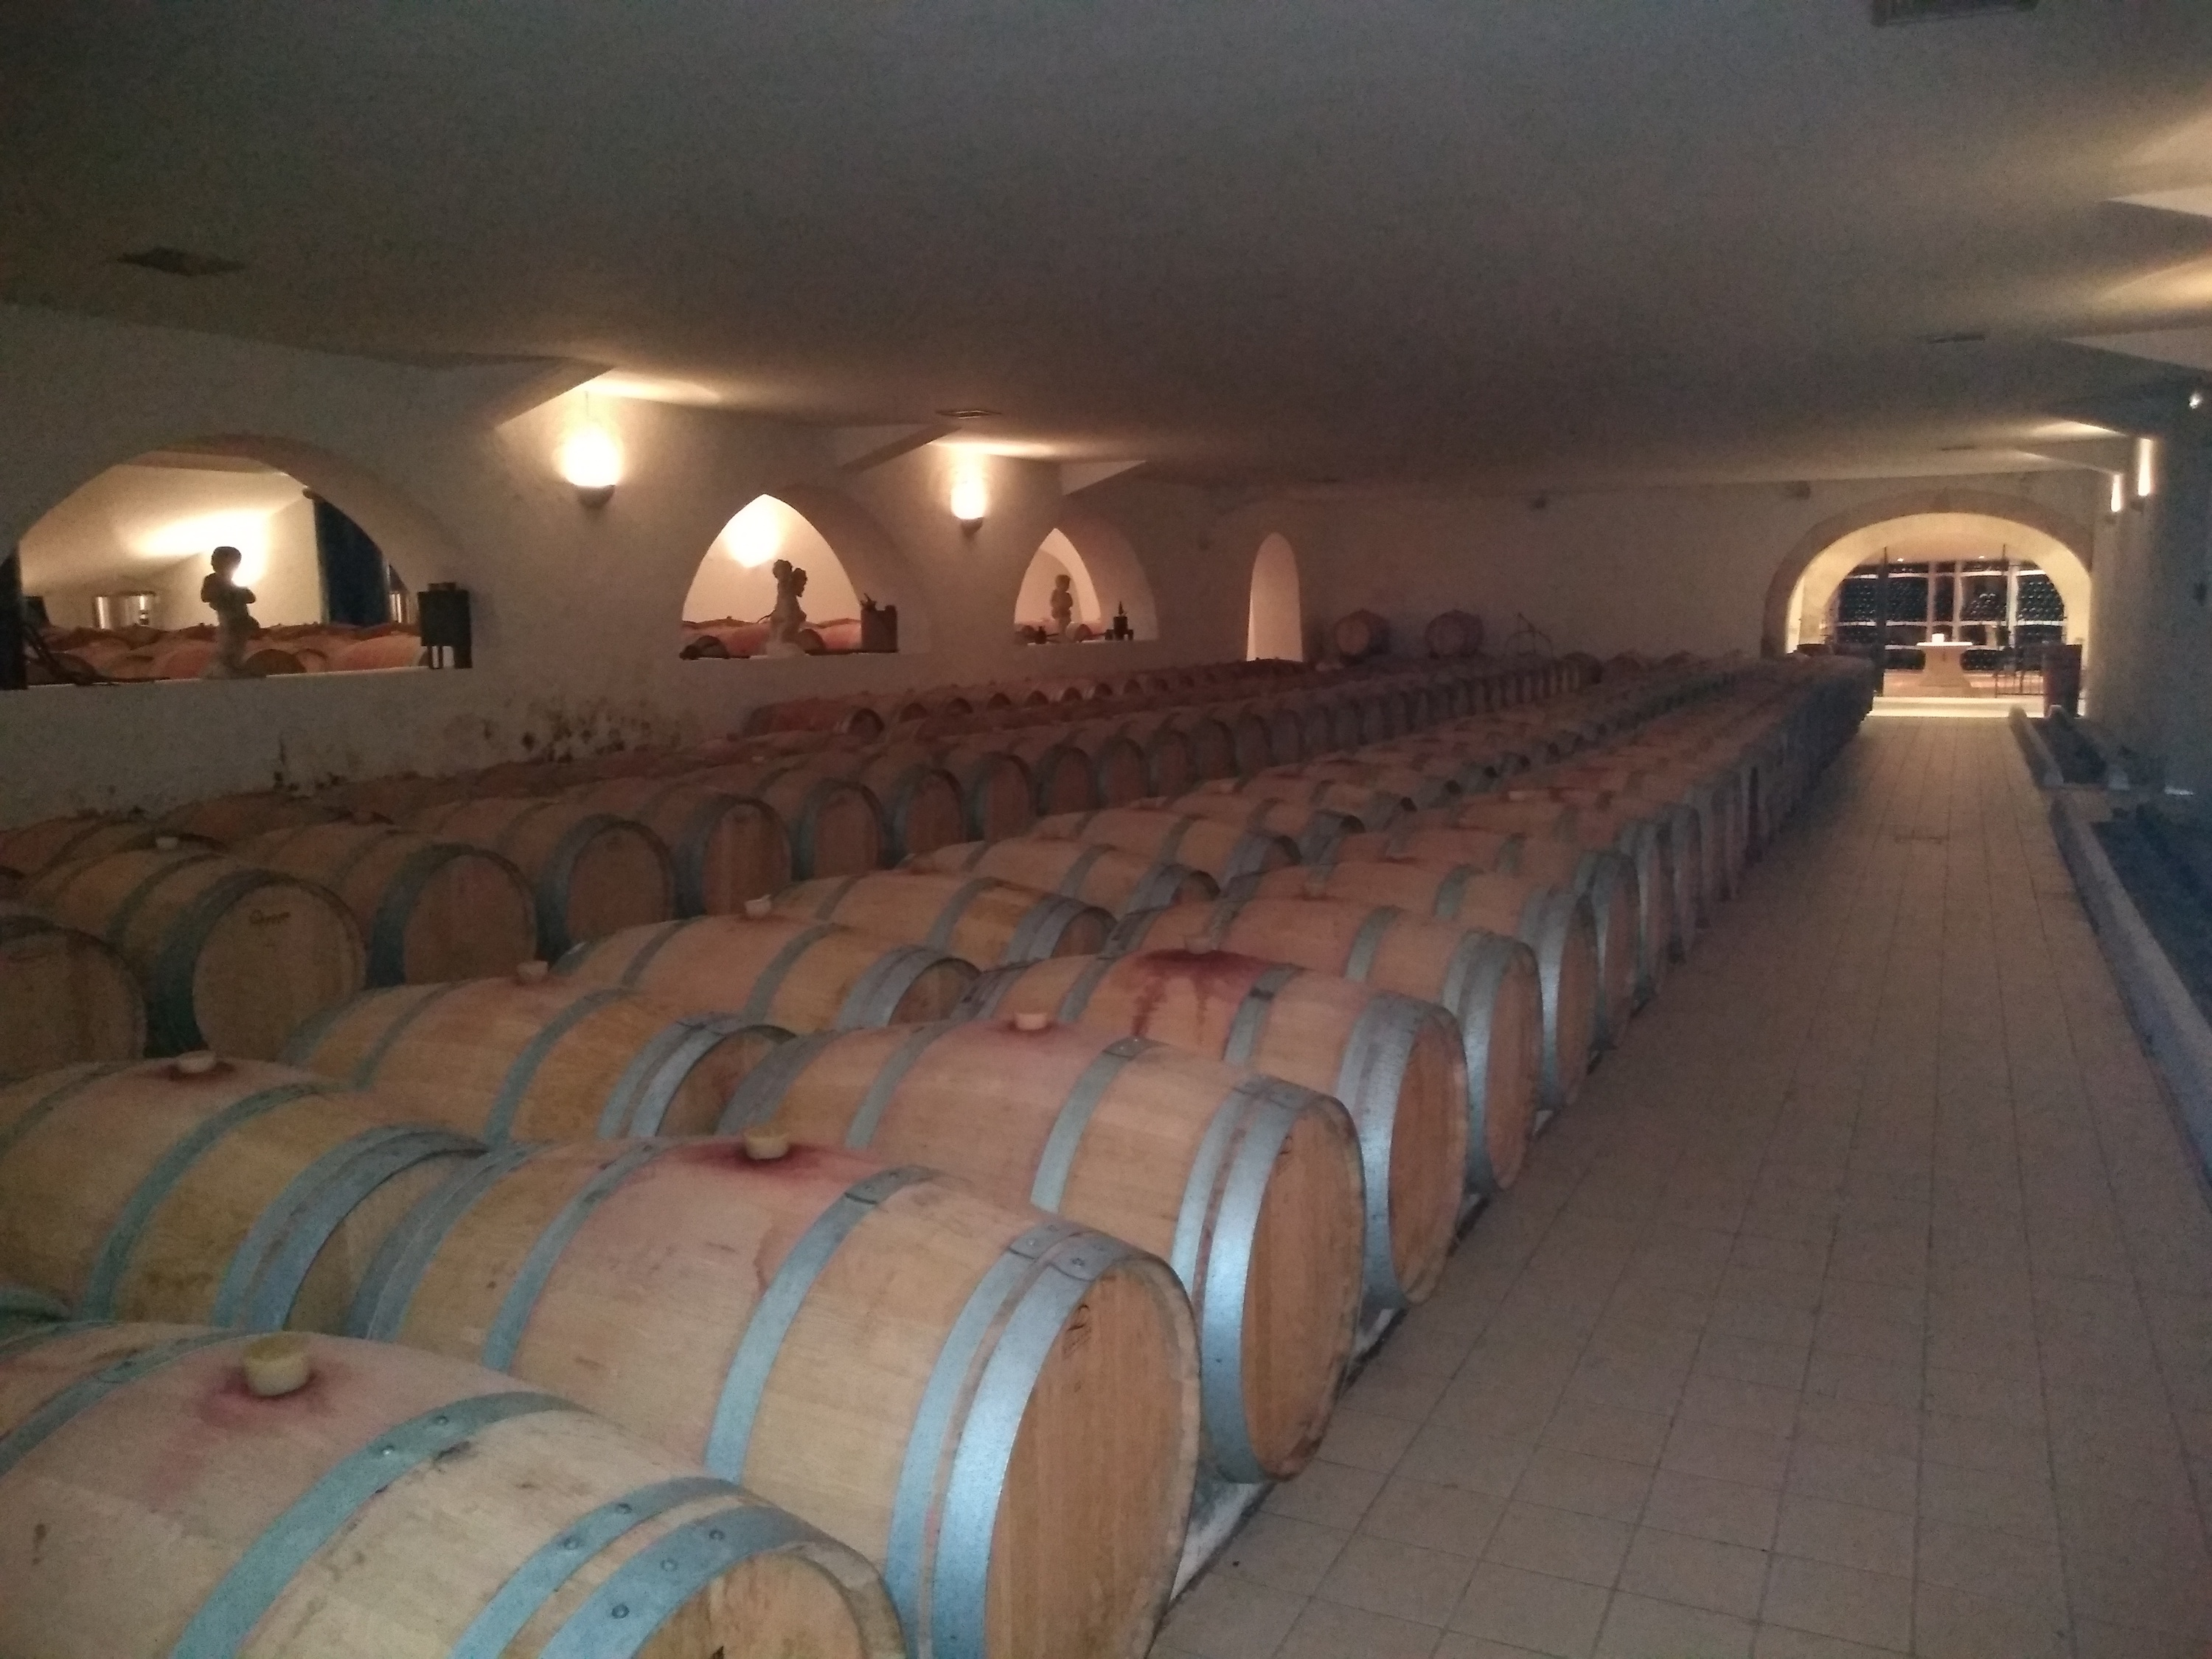 Chateau Prieure Lichine vineyard matures its wines in barrels from many different coopers.